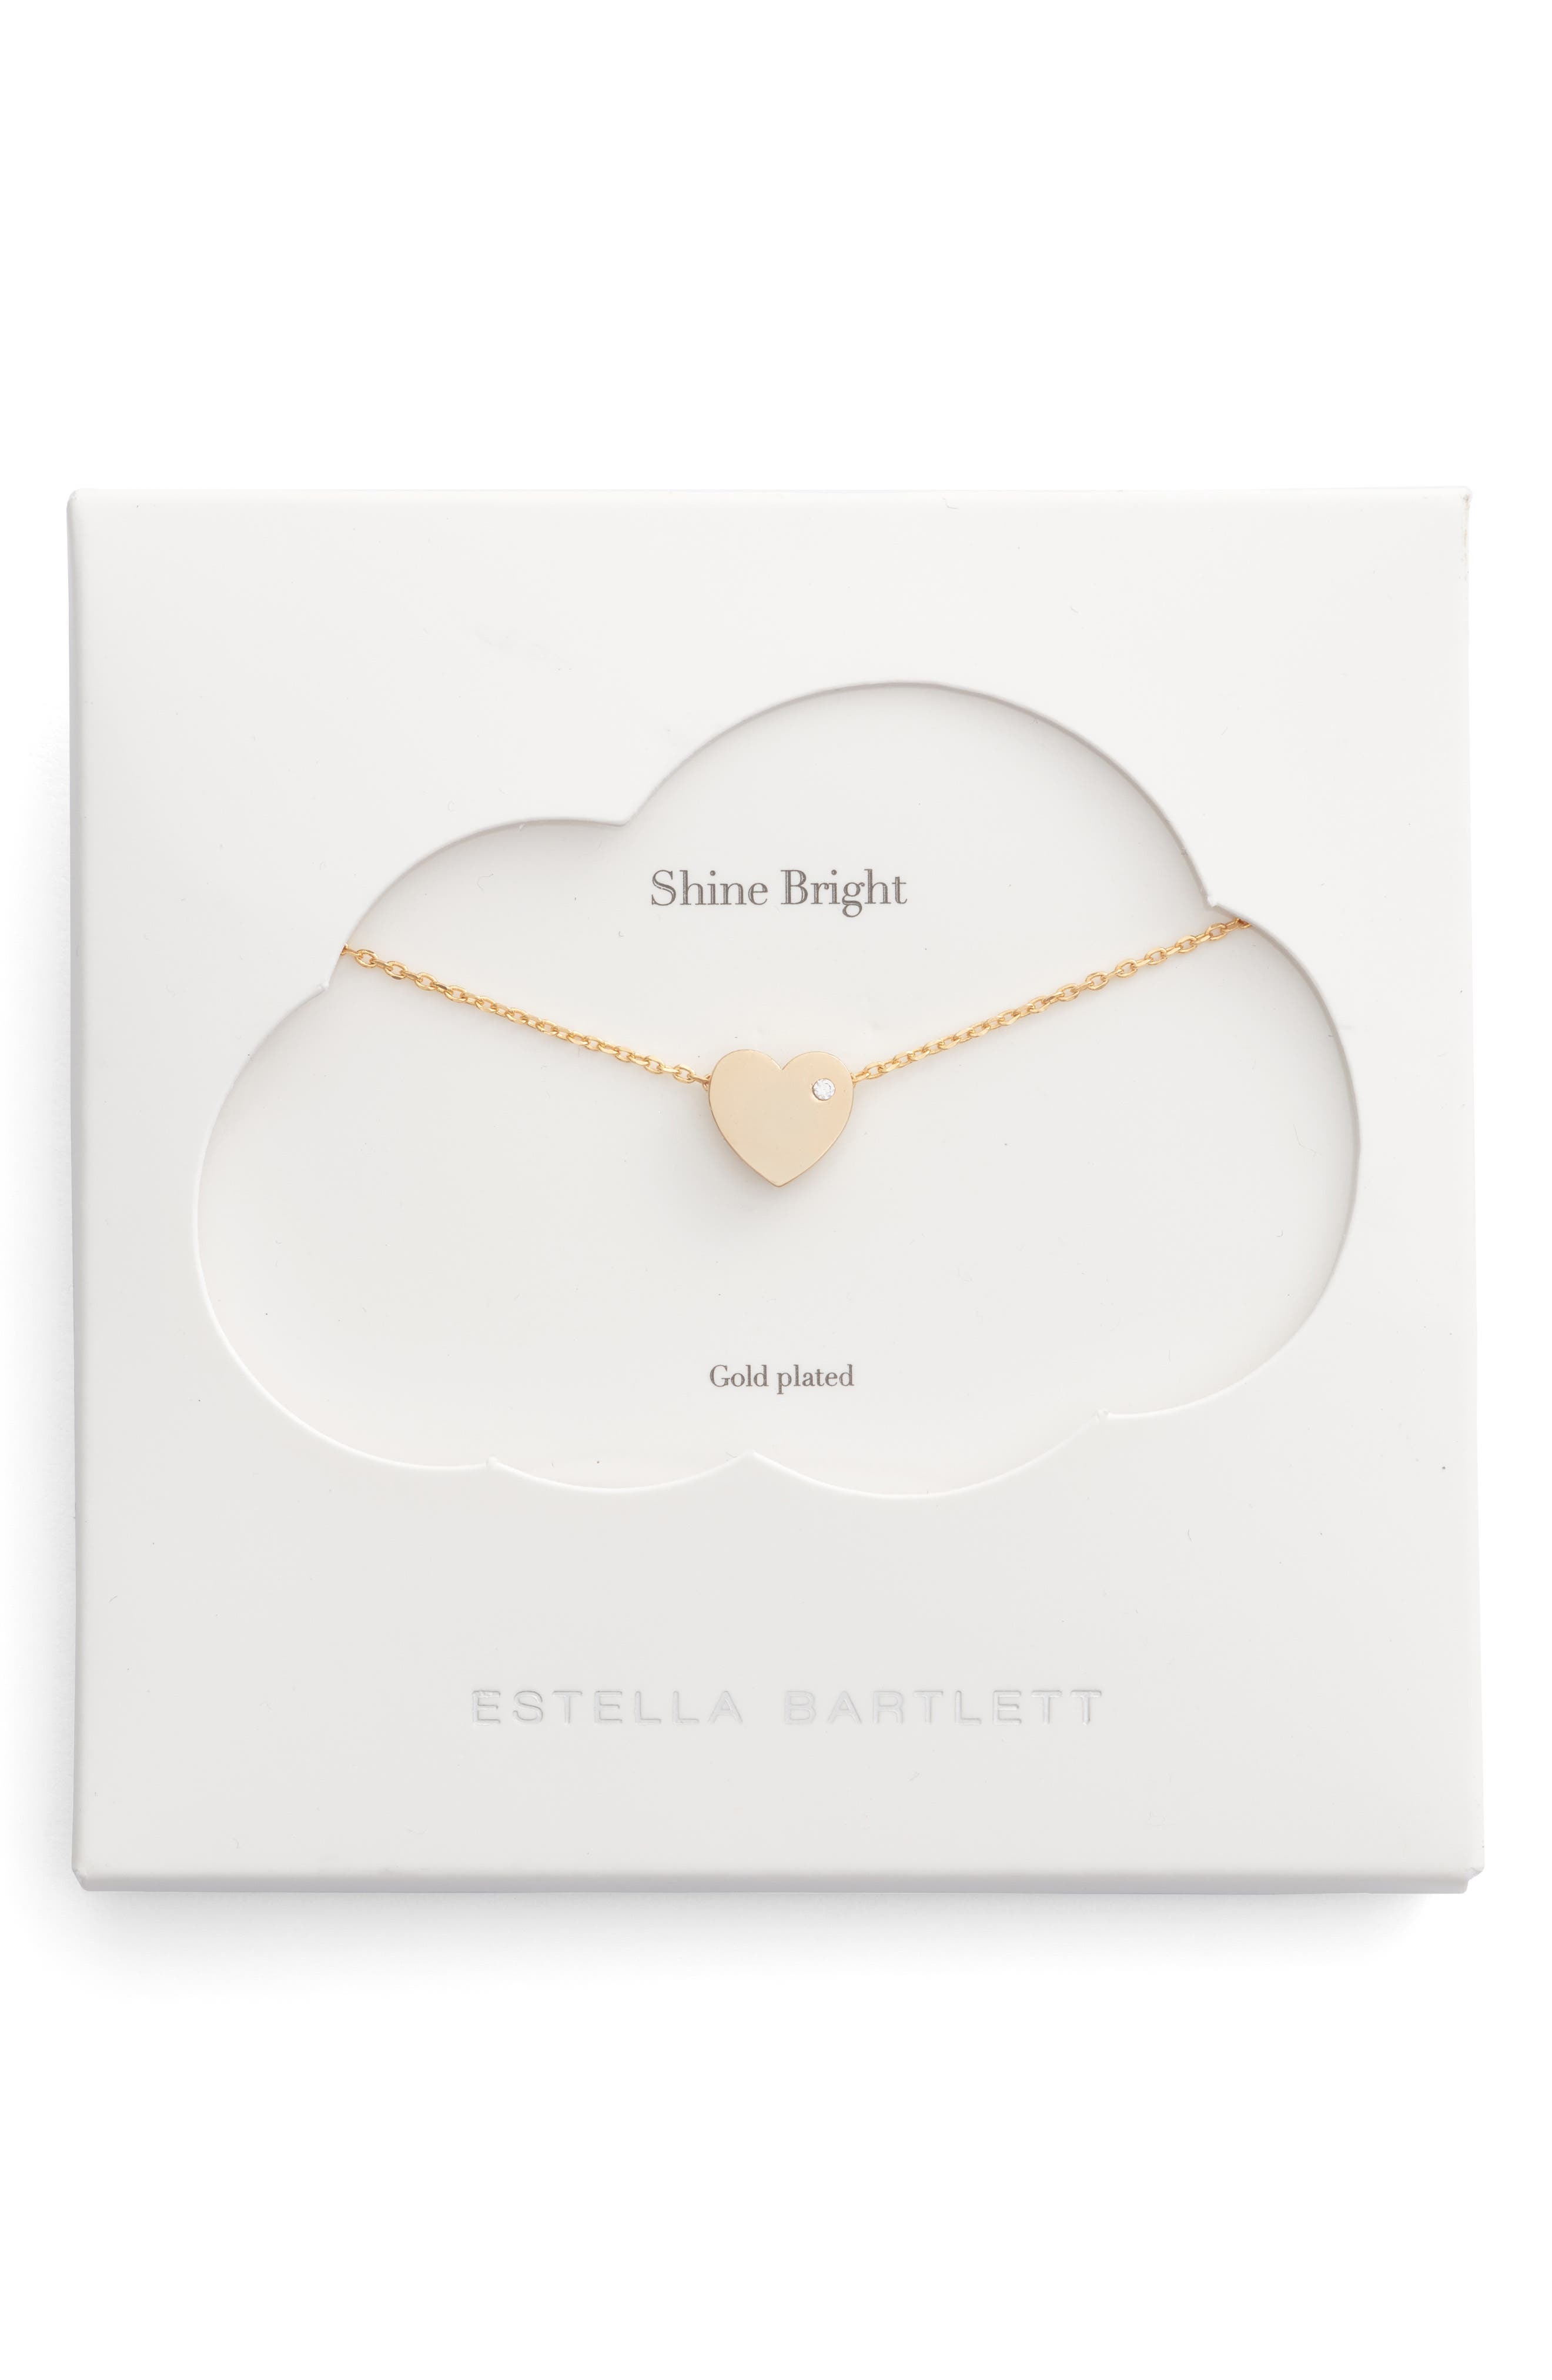 Main Image - Estella Bartlett Shine Bright Heart Necklace